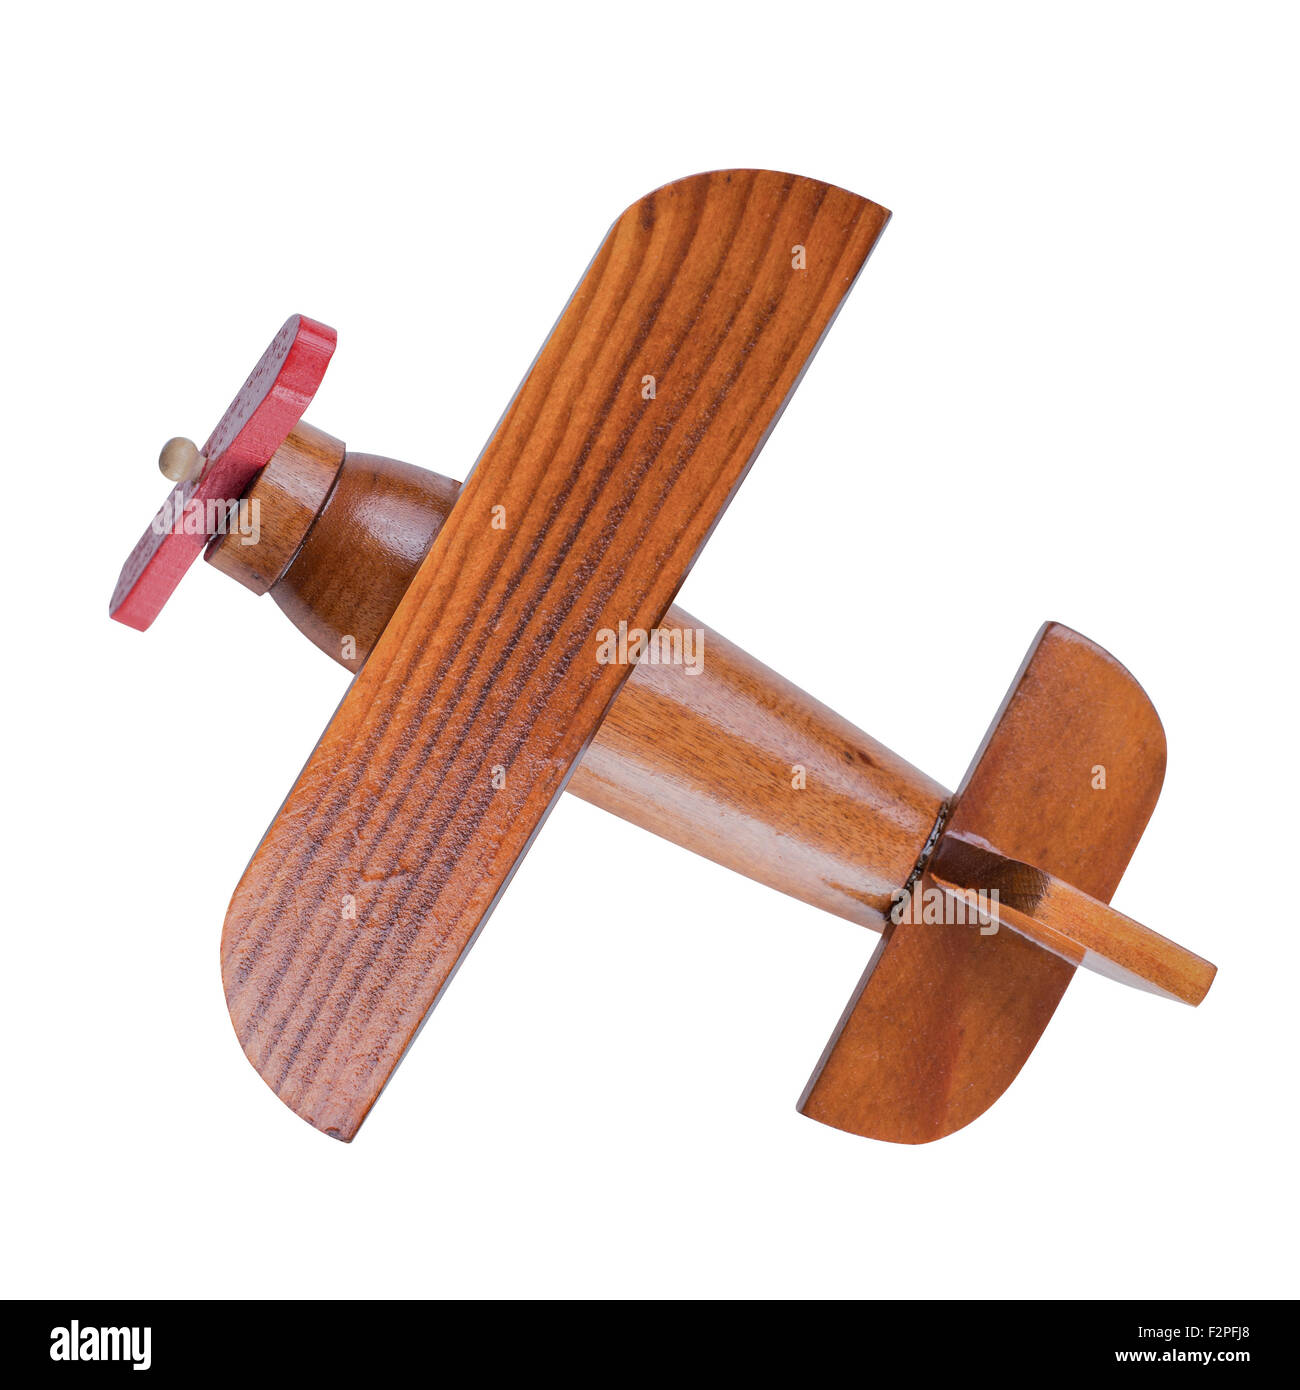 Wooden airplane model top view with clipping path included - Stock Image